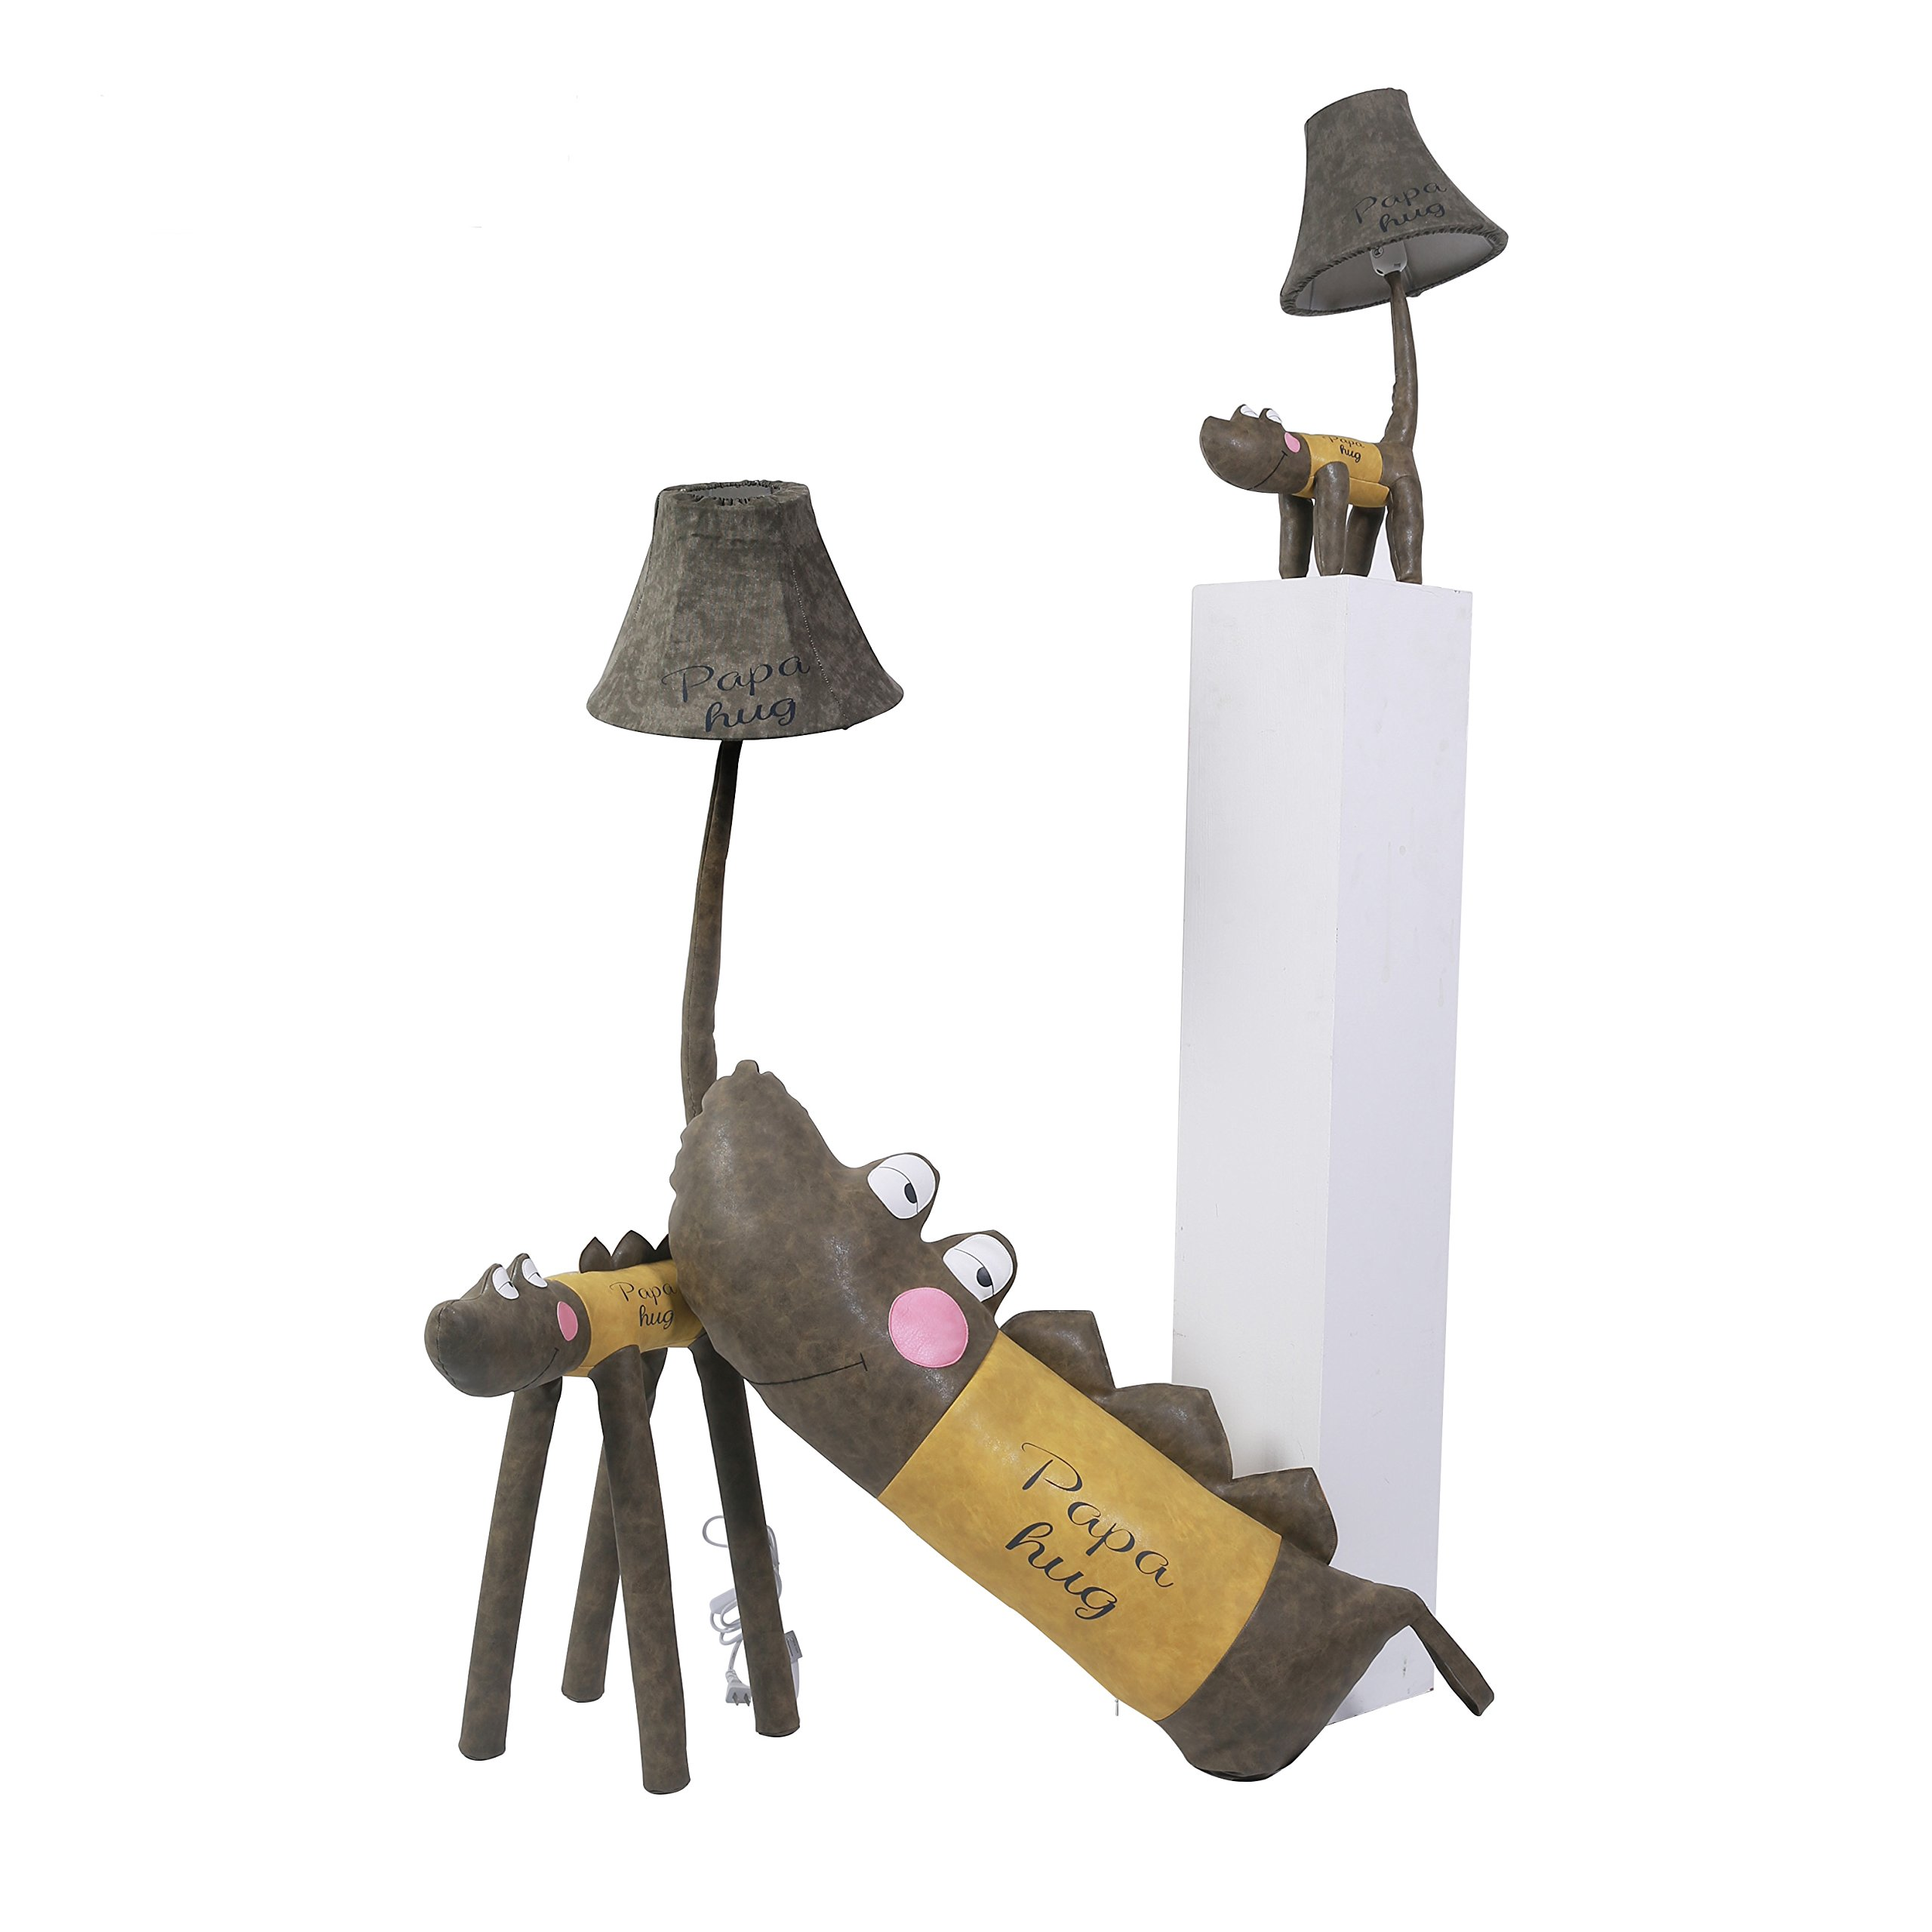 Kids Desk Lamp LED Cute Crocodile LED Floor Lamp Funny Animal children bedroom Table lamp Two Sizes Option (125cm) by Balie Space (Image #2)